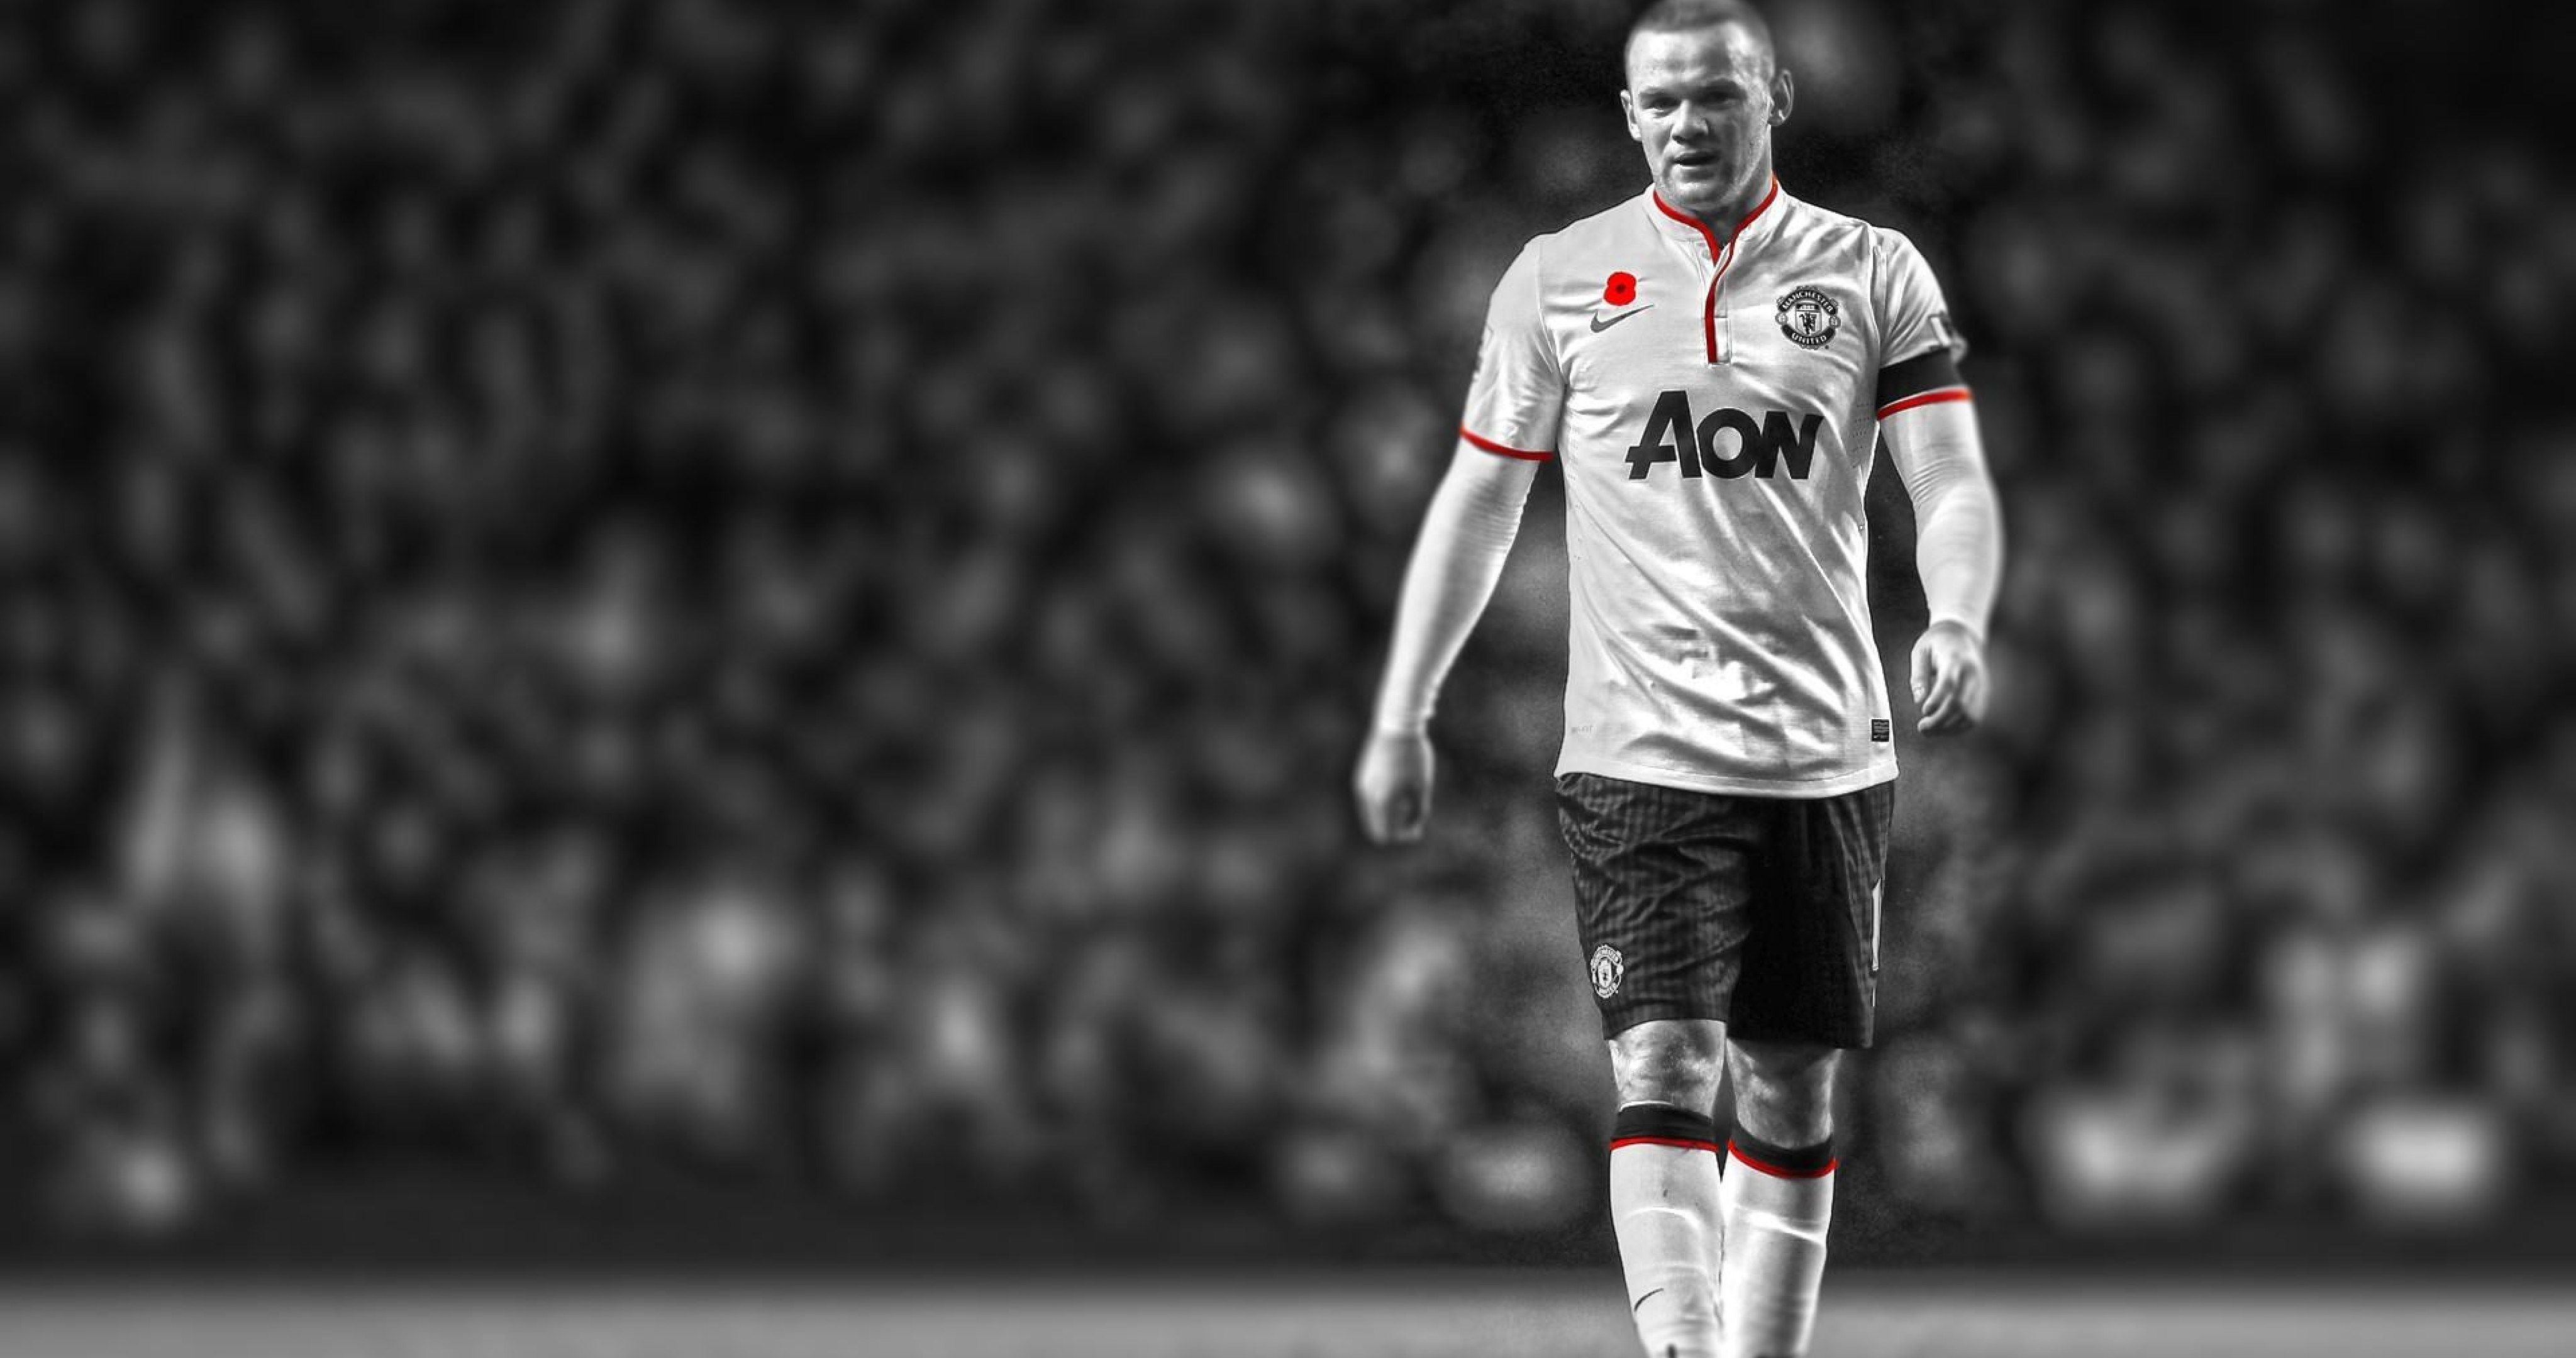 Football Manchester United Rooney 4k Ultra Hd Wallpaper Wayne Rooney Manchester United Rooney Manchester United